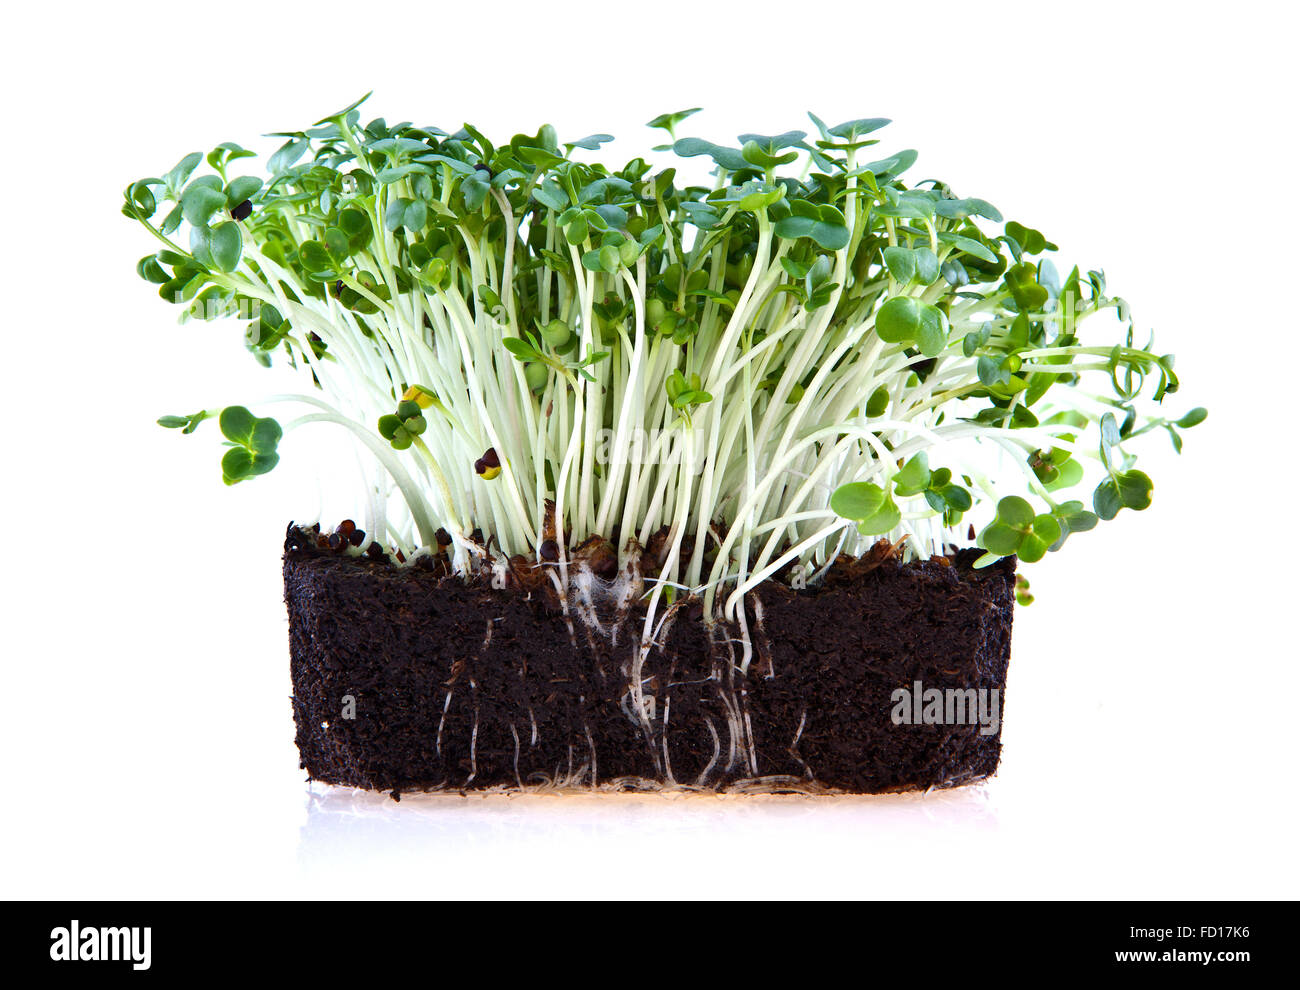 Fresh Garden cress isolated on white background - Stock Image